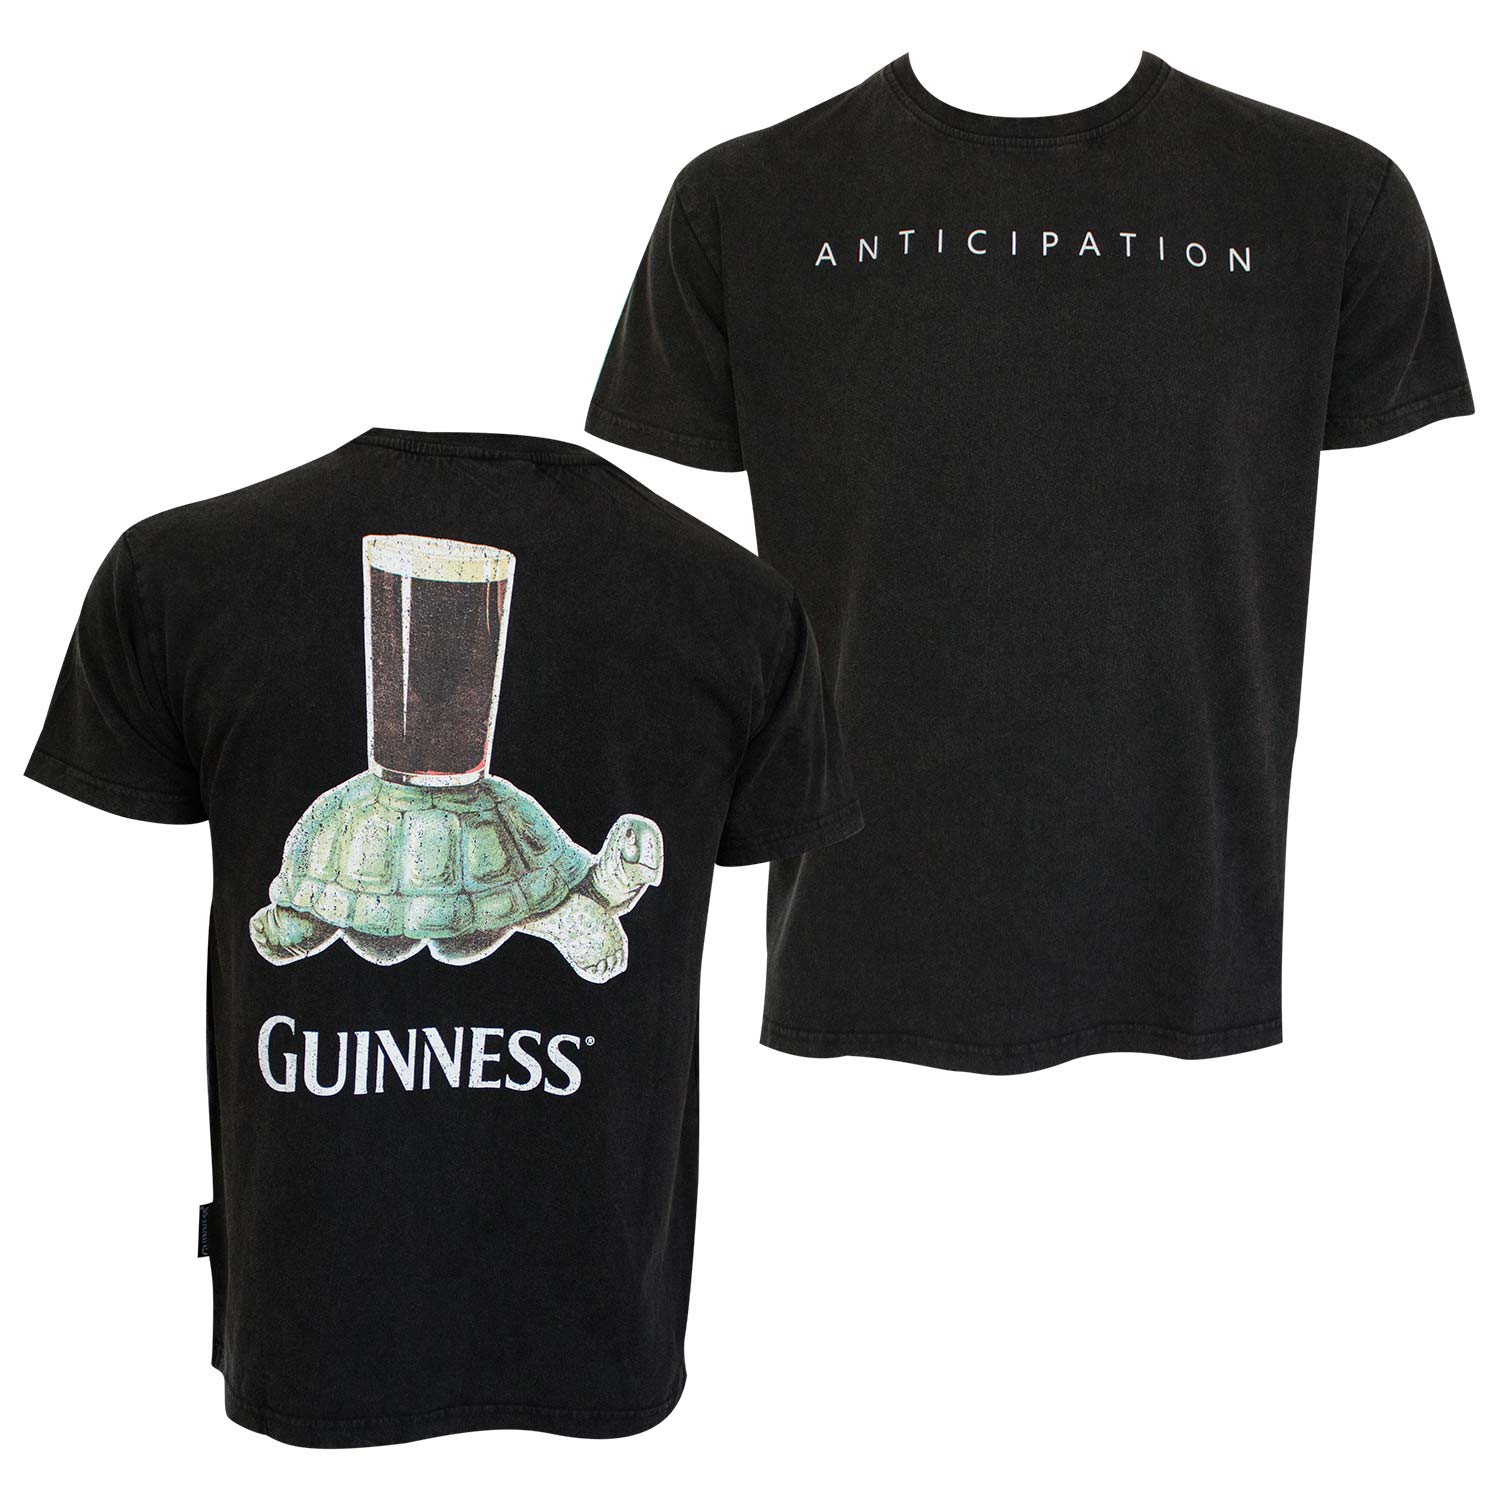 Guinness Anticipation Black Tee Shirt